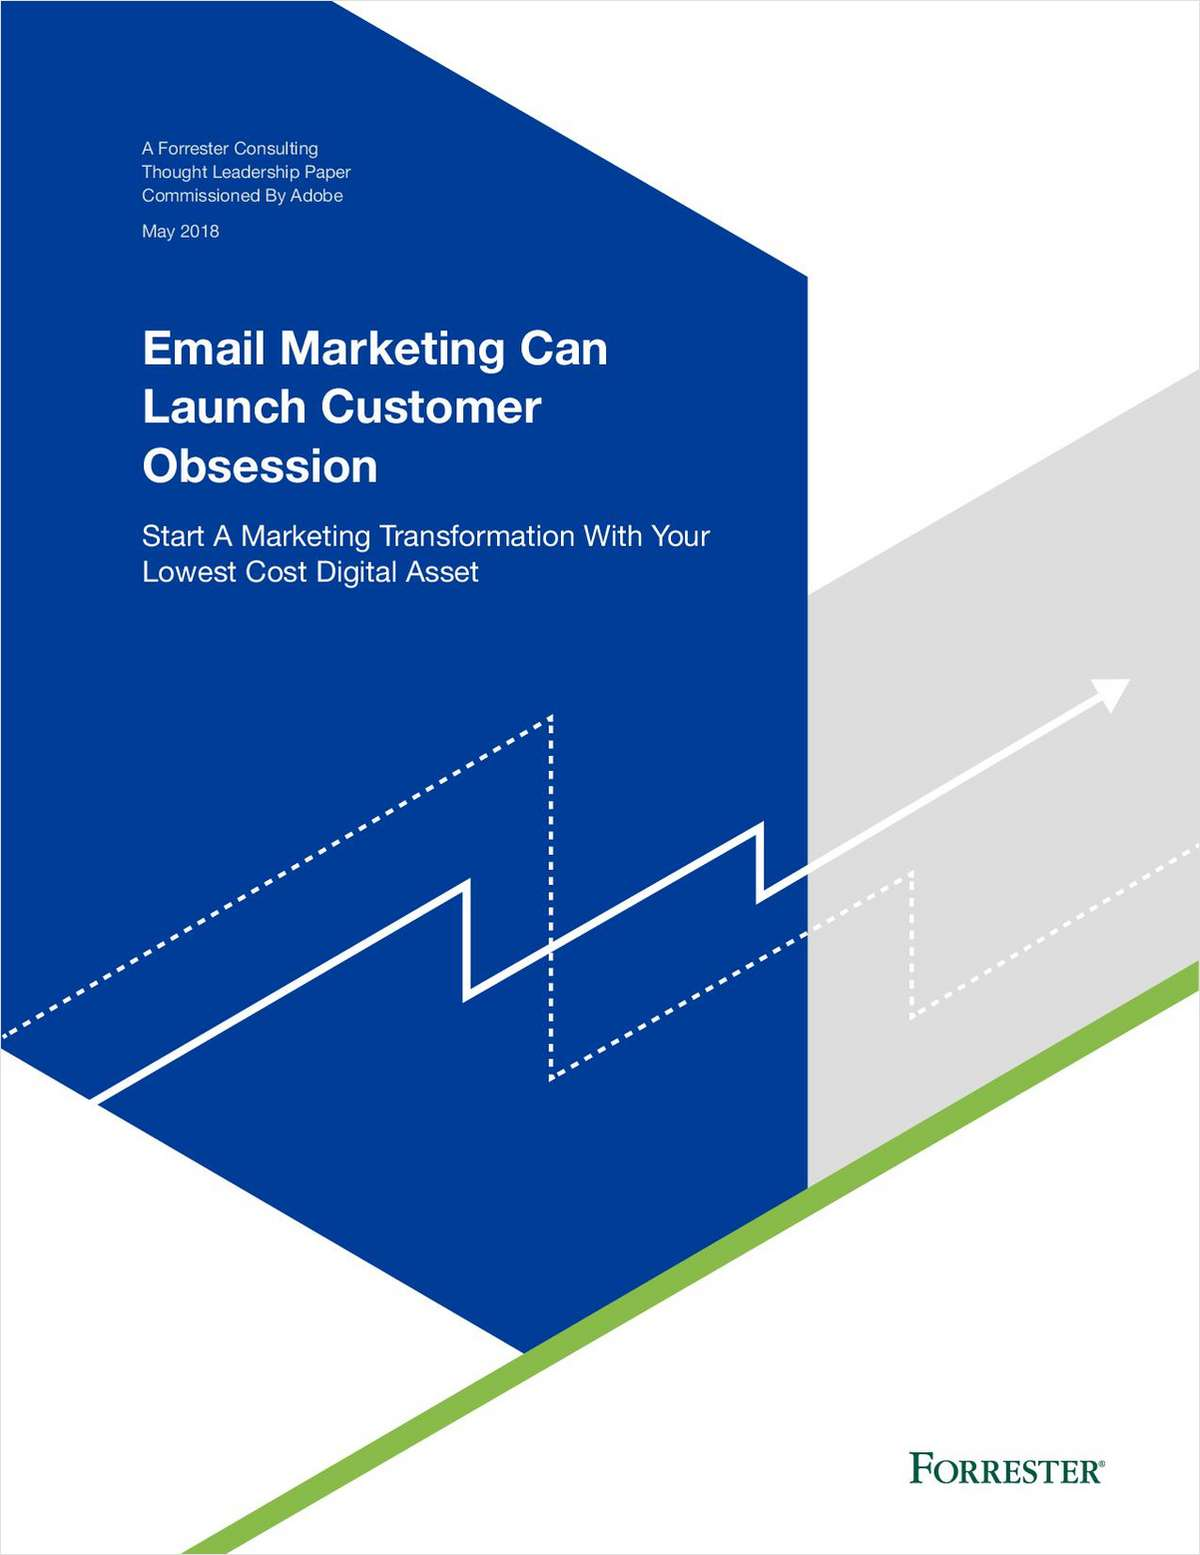 Email Marketing Can Launch Customer Obsession